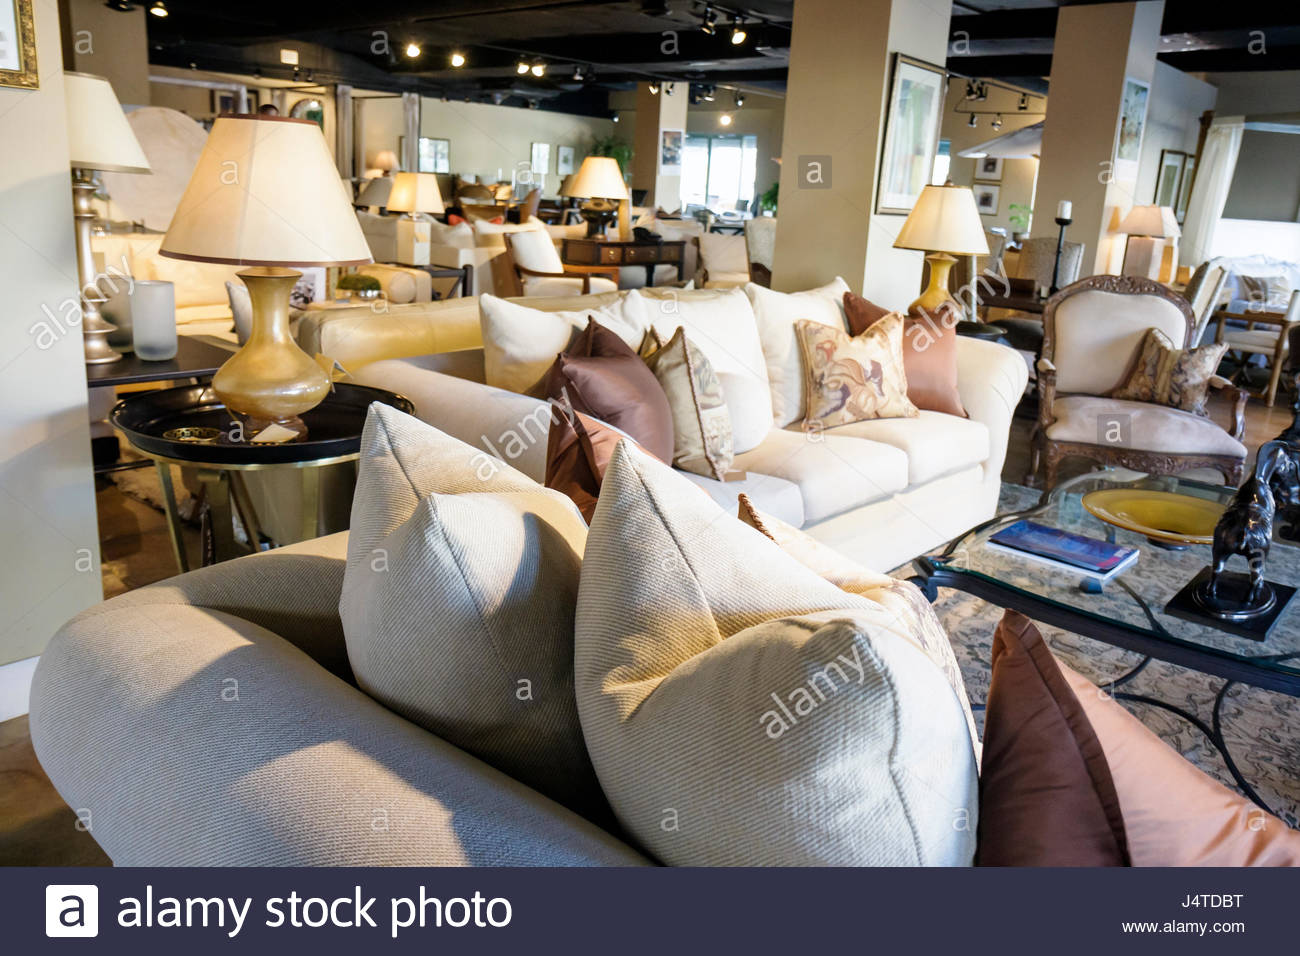 Beau Miami Coral Gables Miami Florida Kreiss Furniture Store Retail Family  Business Showroom Sofa Upholstery Plush Beige Decor Table Lamp P